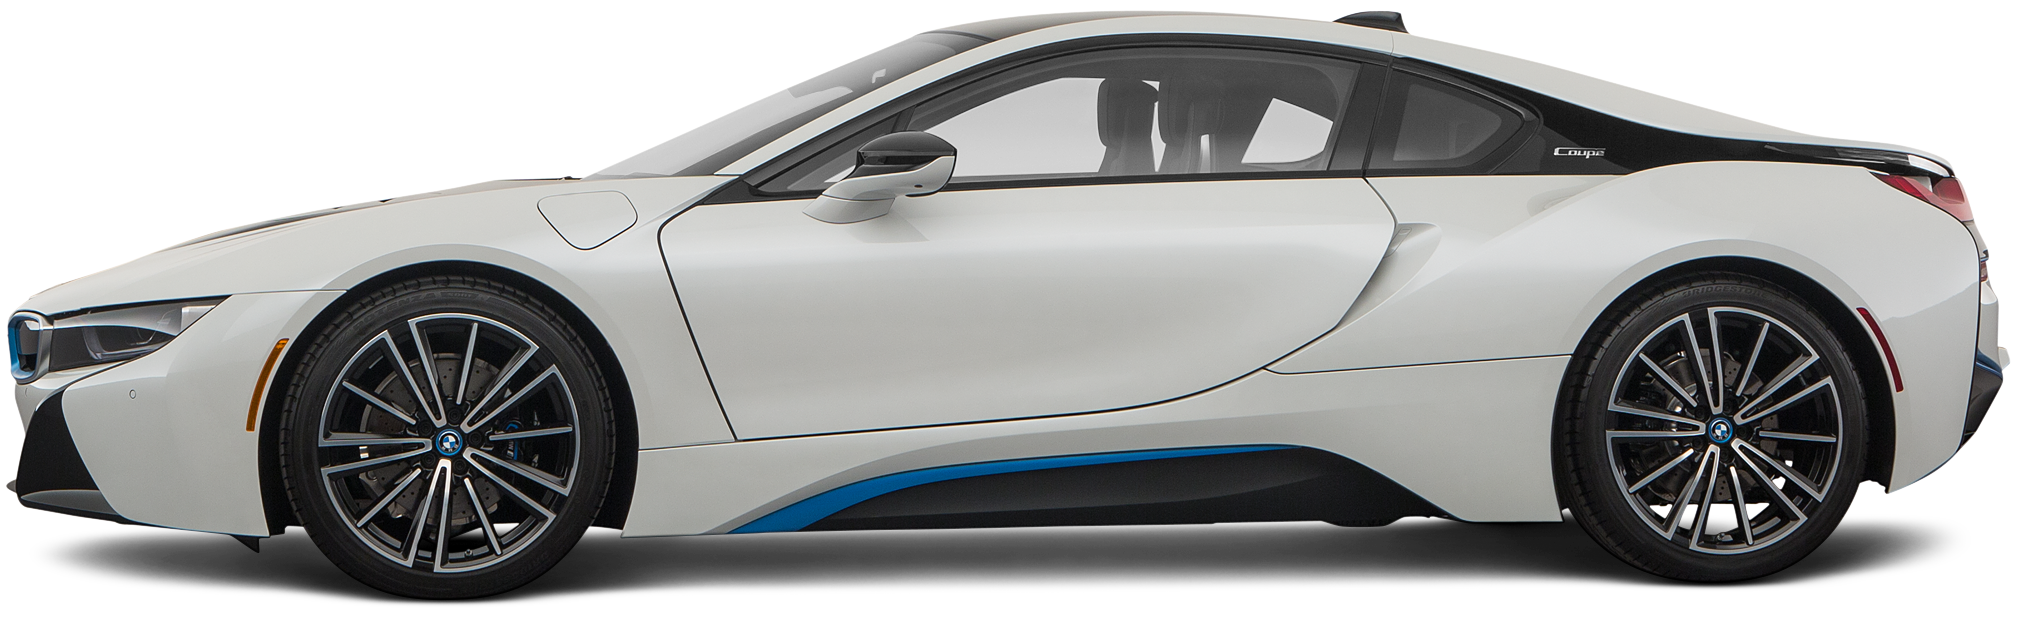 2020 BMW i8 Coupe